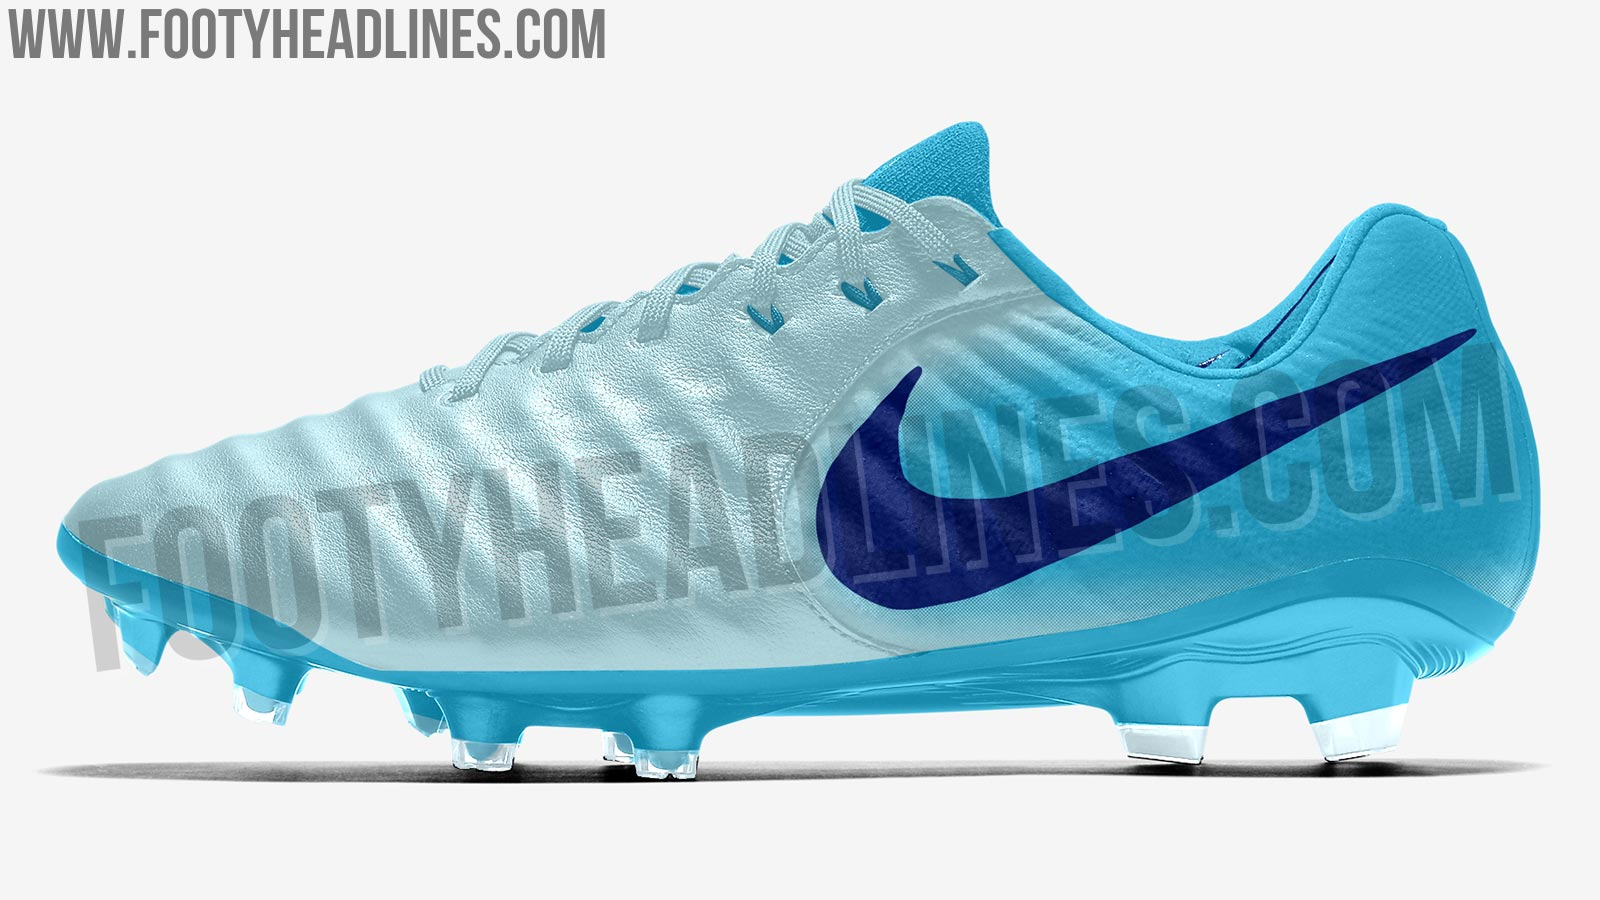 39 ice blue 39 nike tiempo legend 2018 boots leaked footy. Black Bedroom Furniture Sets. Home Design Ideas